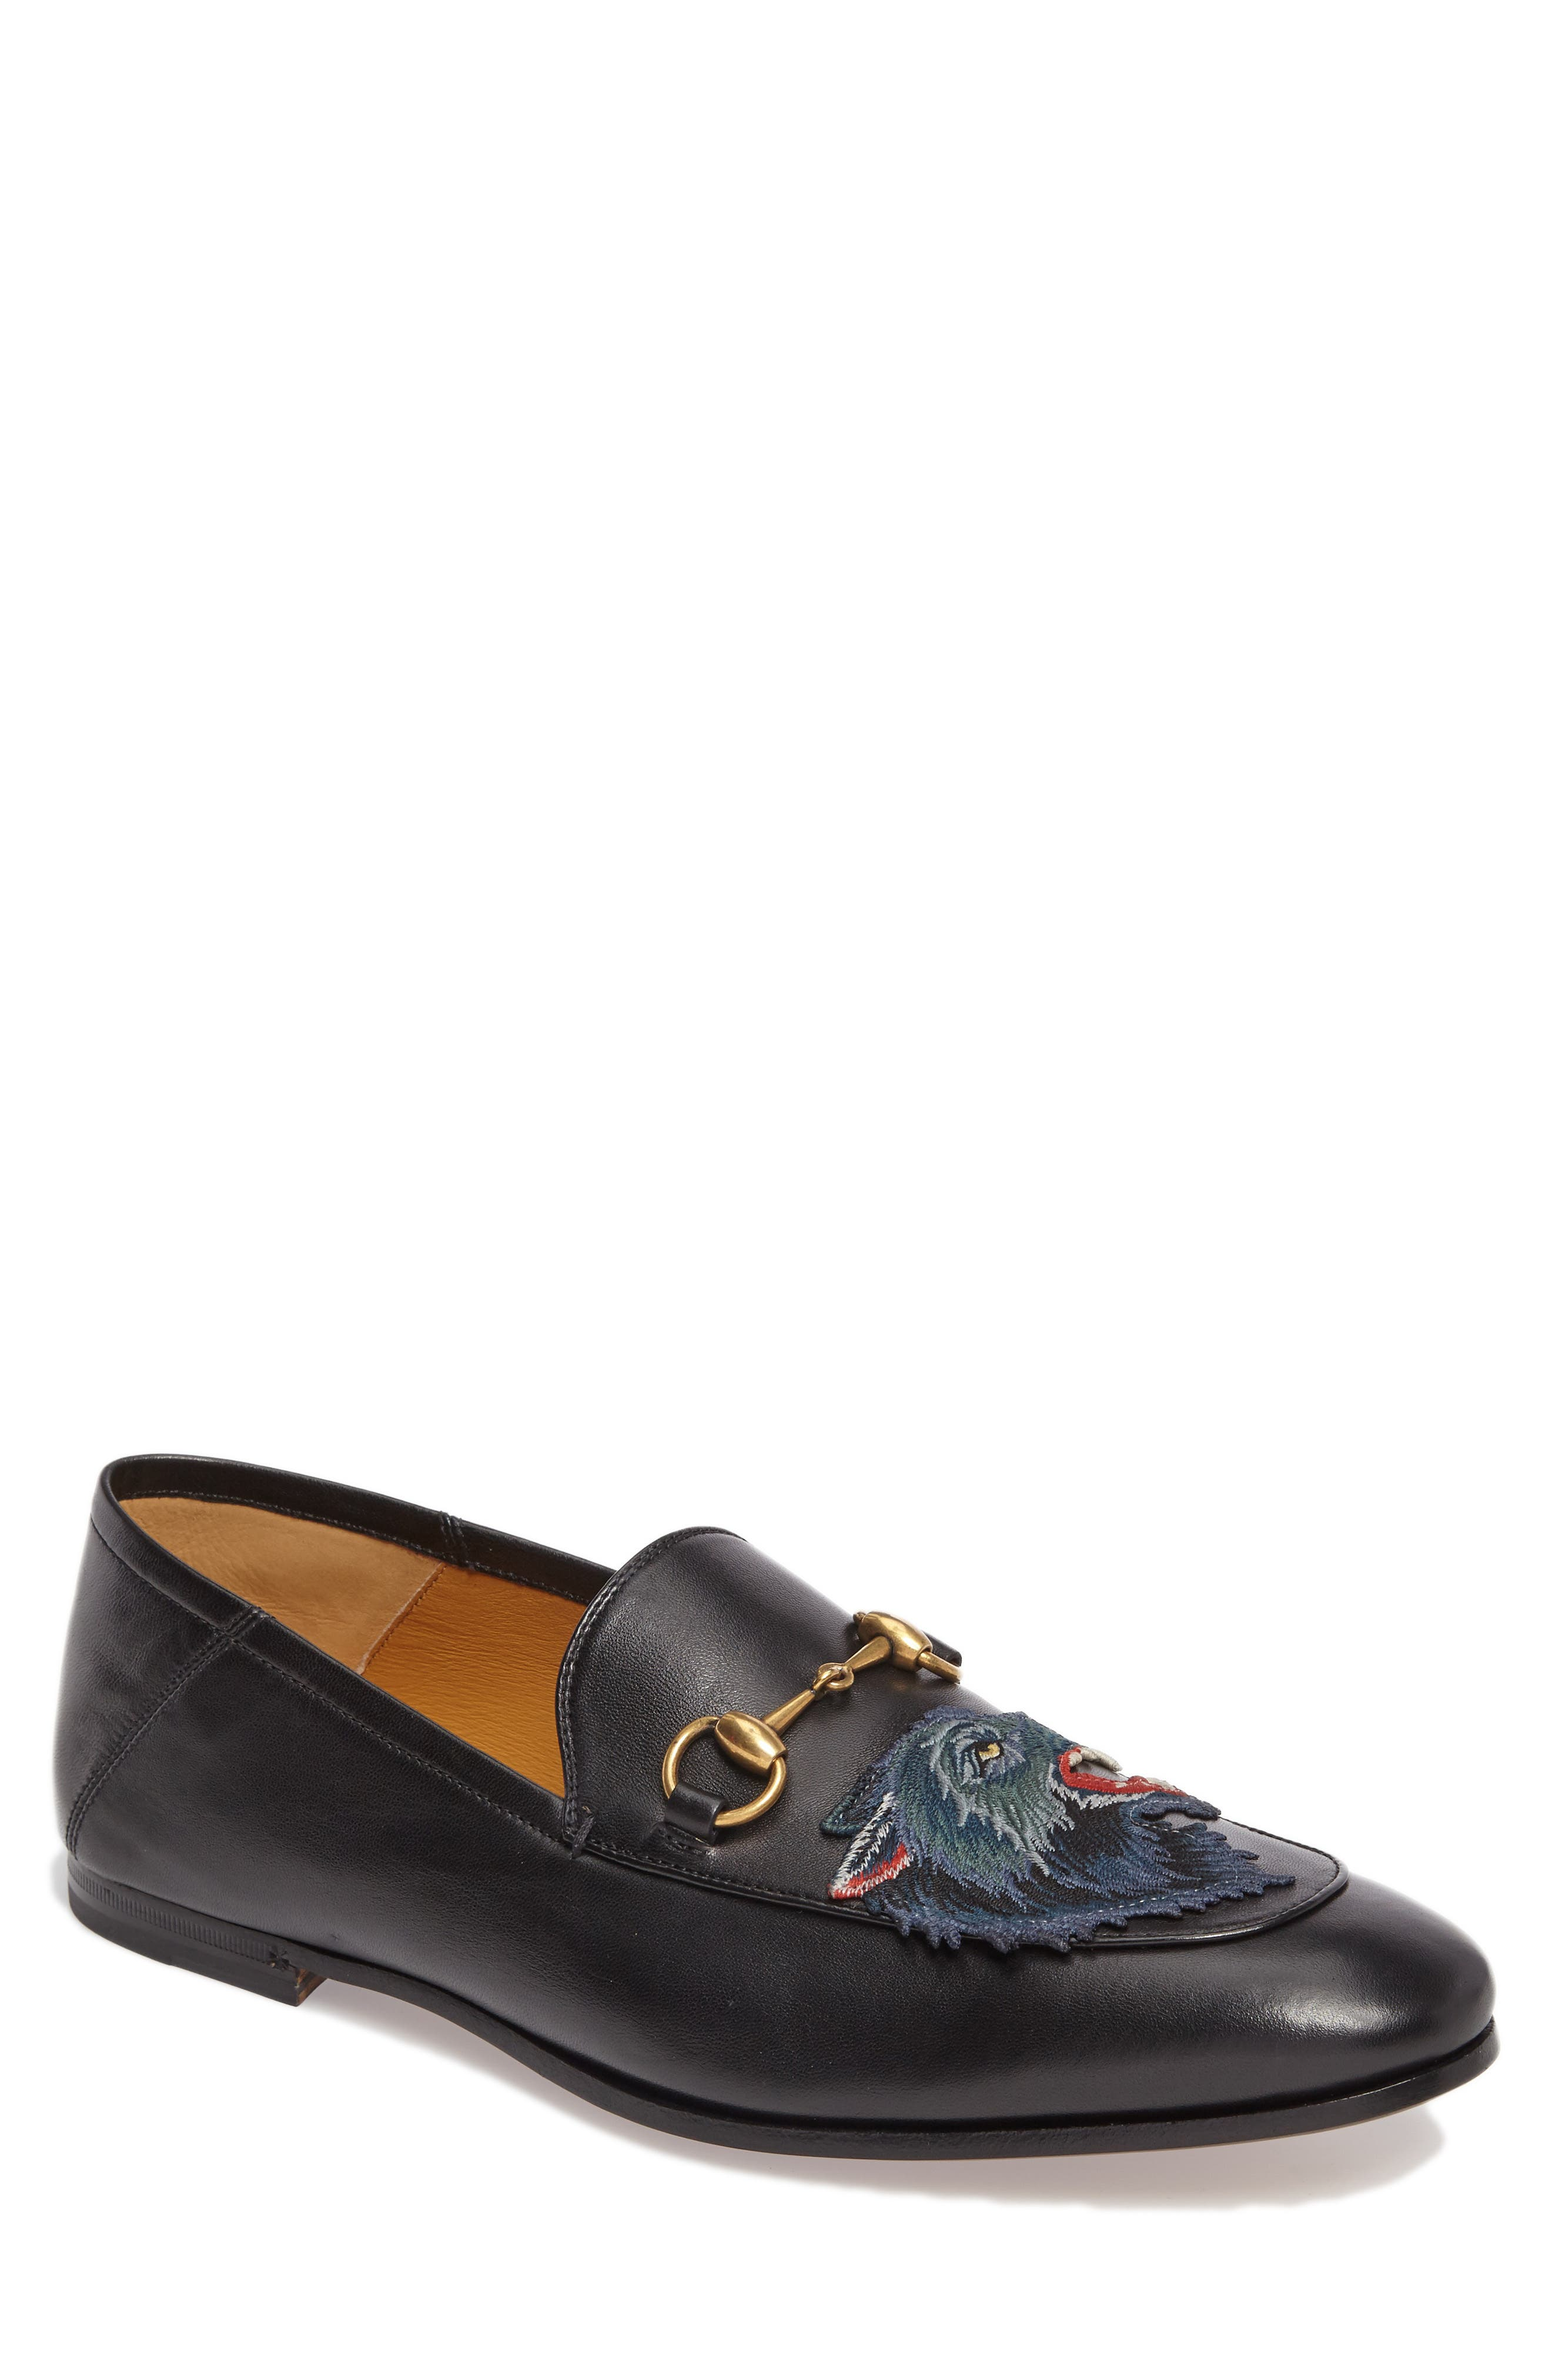 Wolf Leather Loafer,                         Main,                         color, Black/ Blue